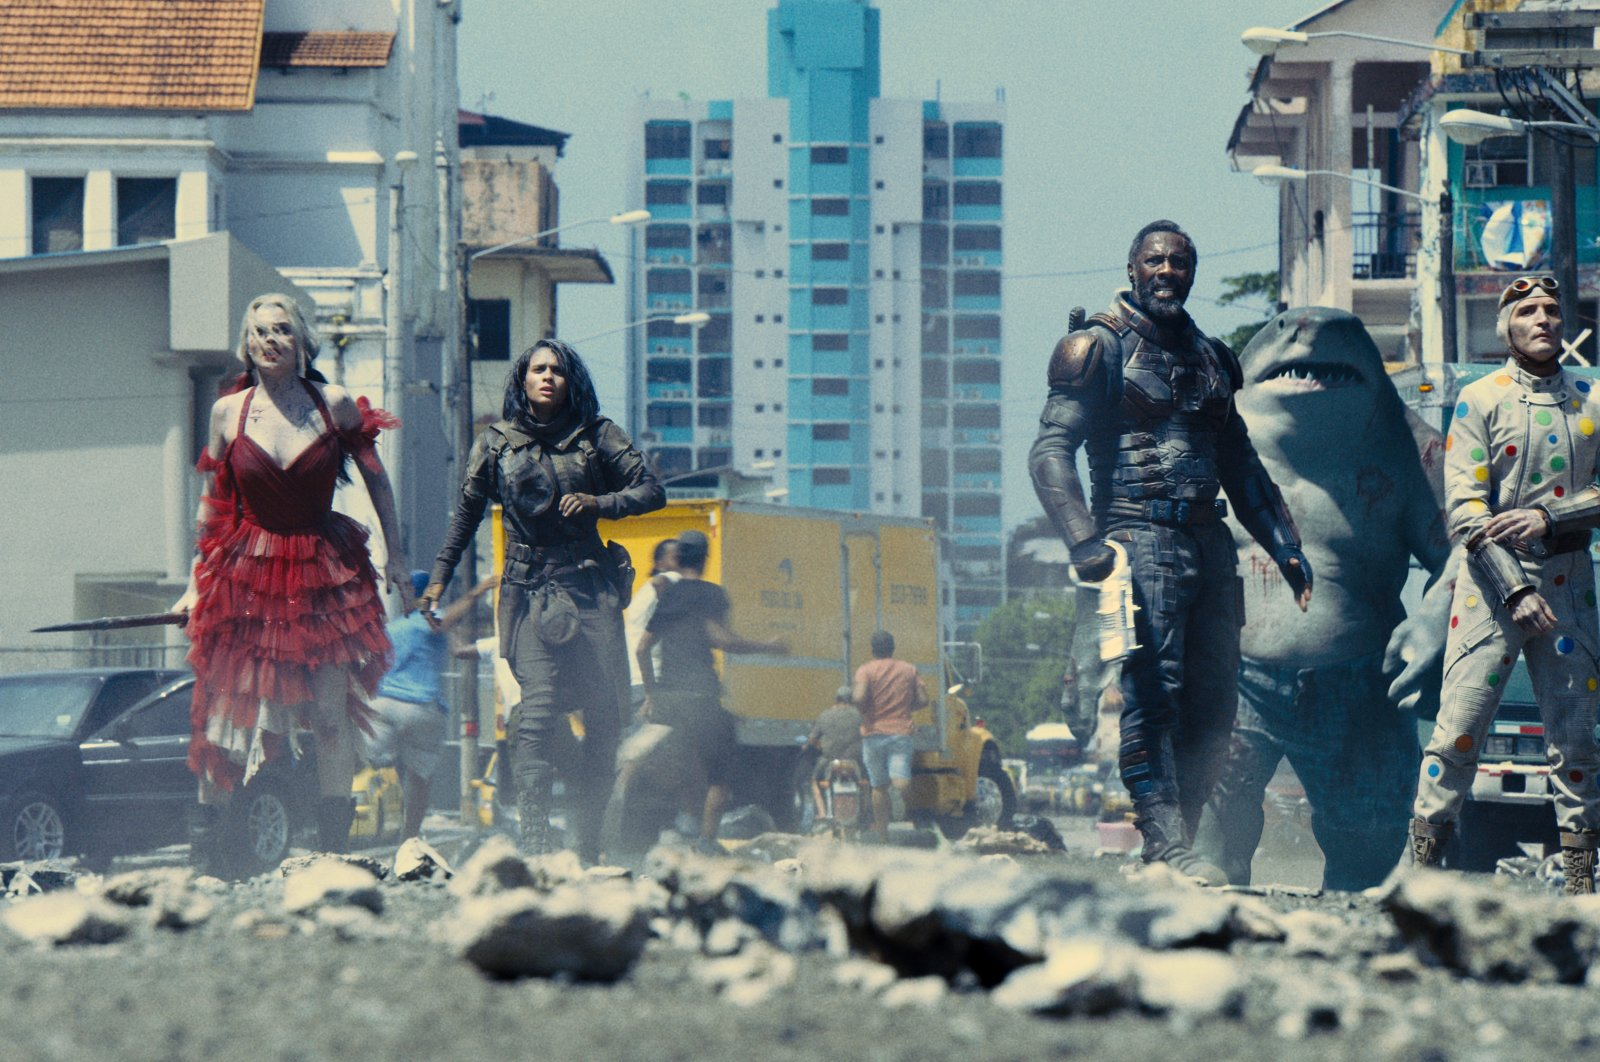 """This image provided by Warner Bros. Pictures shows, from left, Margot Robbie, Daniela Melchior, Idris Elba and David Dastmalchian in a scene from """"The Suicide Squad."""" (Warner Bros. Pictures via AP)"""